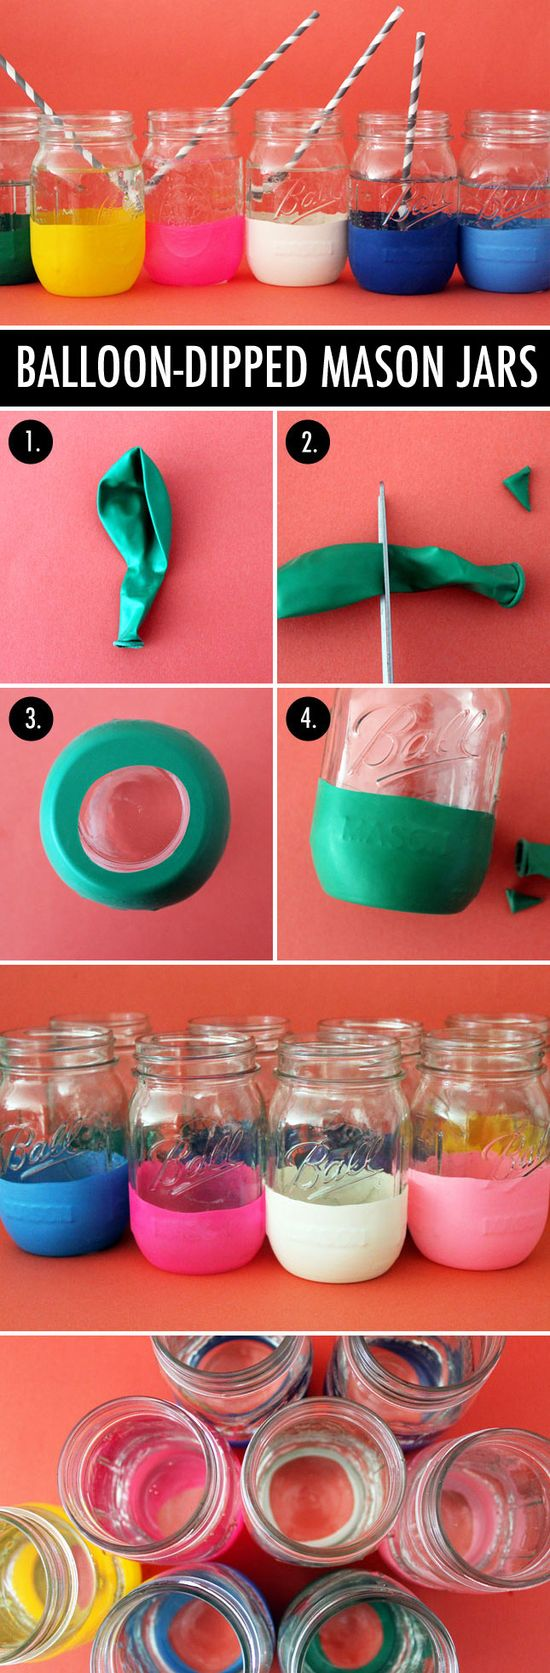 DIY Balloon-Dipped Mason Jars!!